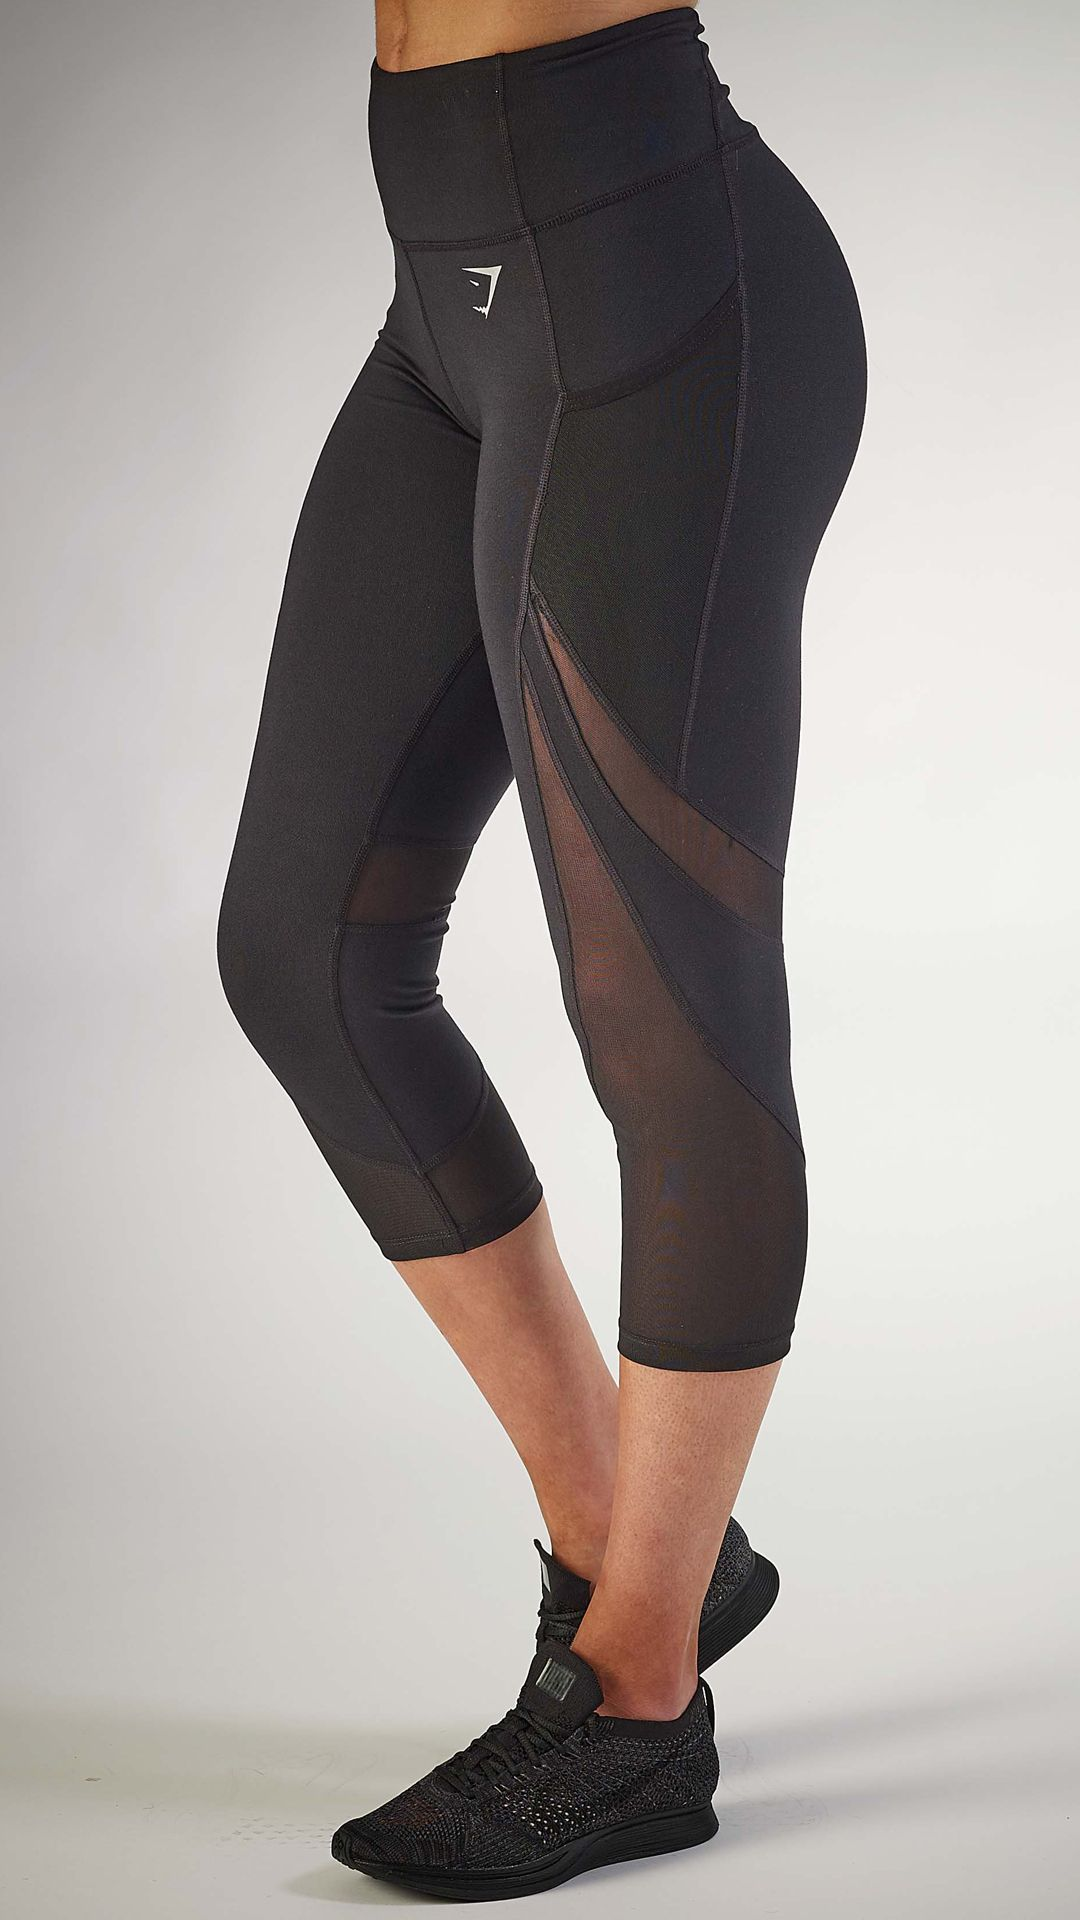 ad25c908ff3b5 The Sleek Sculpture Cropped leggings are back and better than ever before.  Ready to give you the coolest, most comfortable workout.